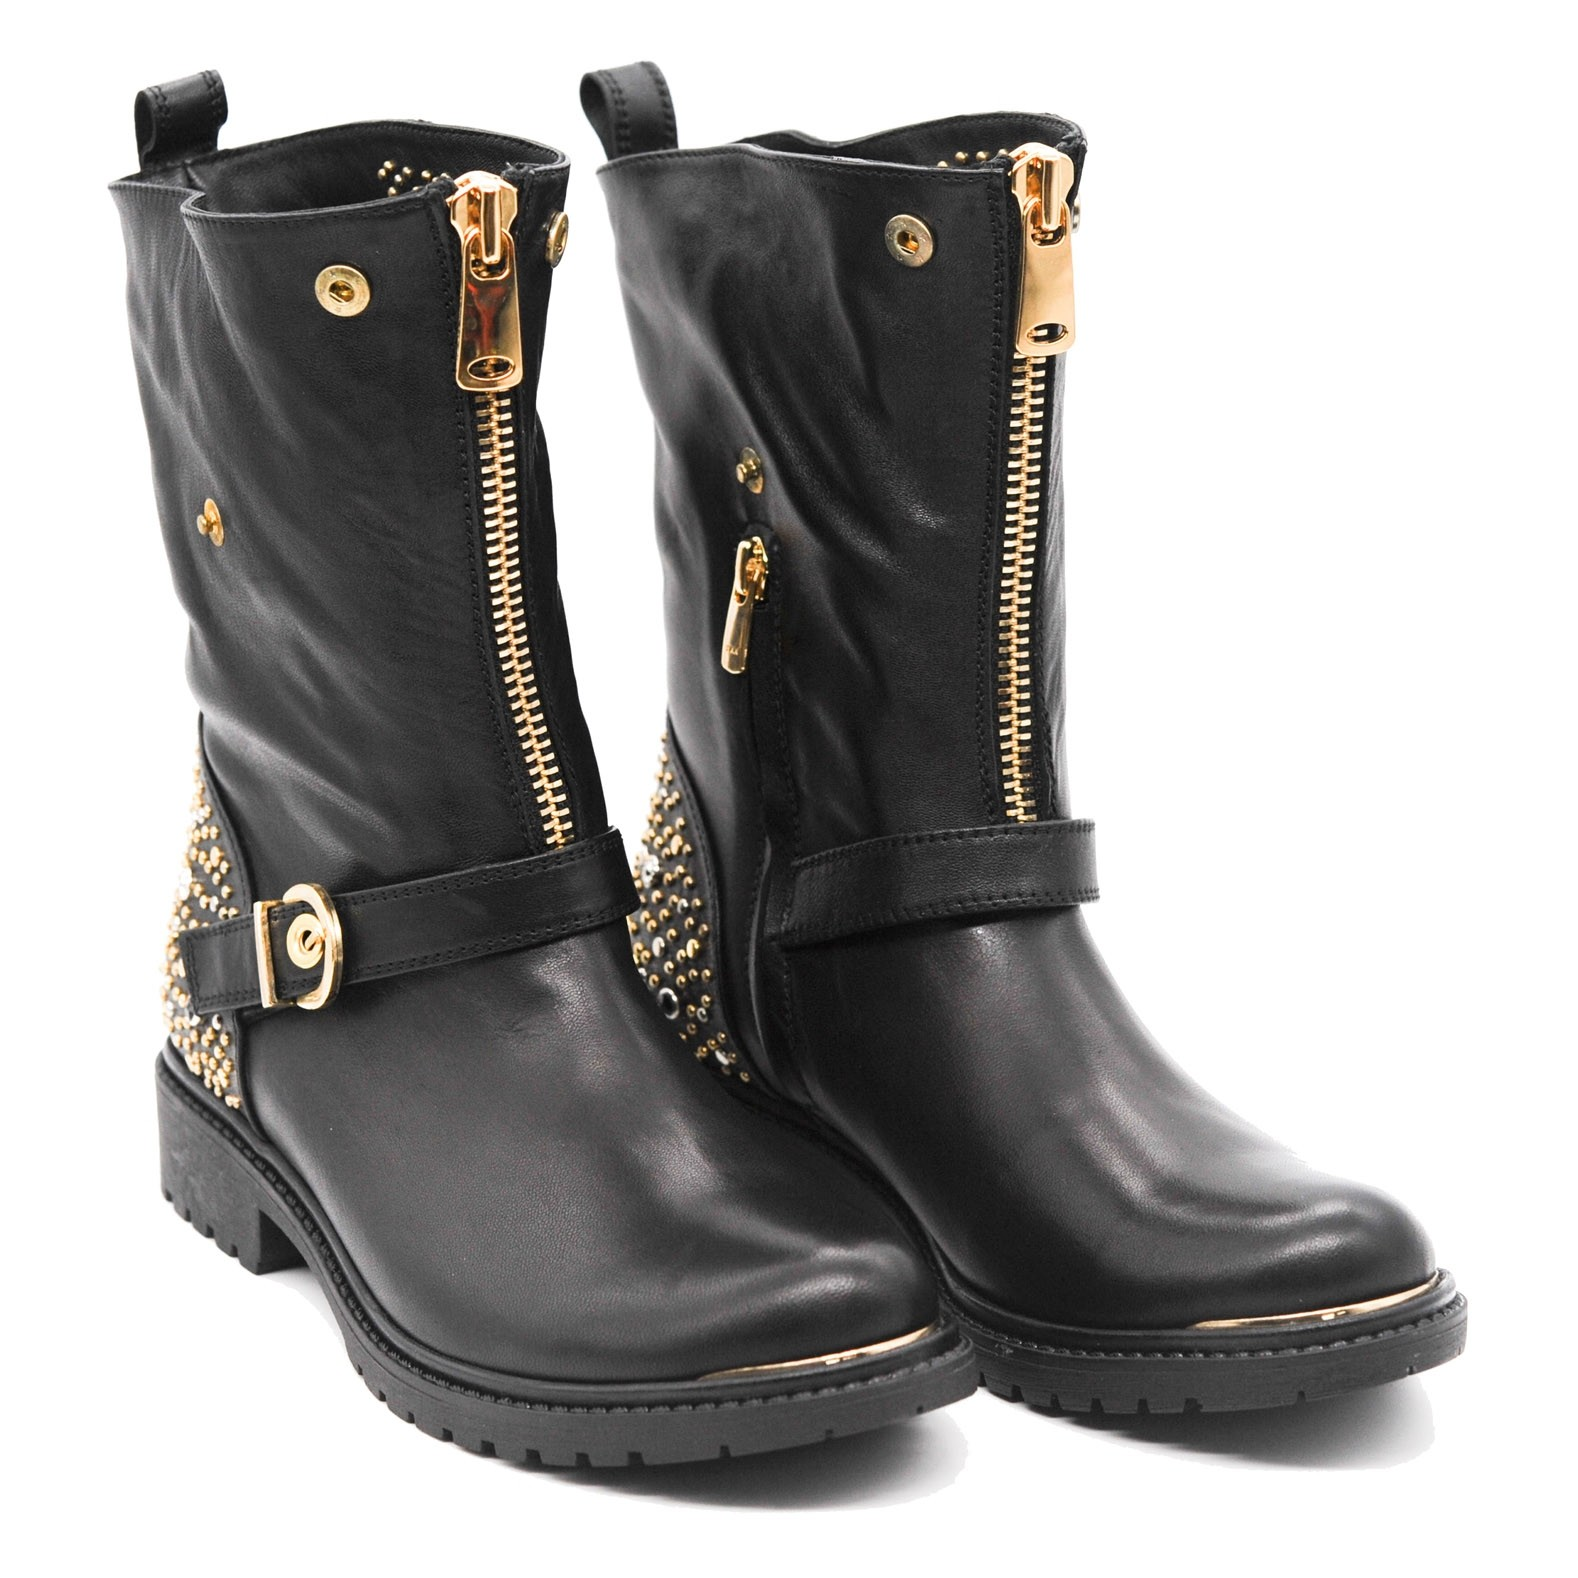 Biker Smooth Leather Ankle Boots with Stud Embellished Detailing Front Zip Fastening and Buckle